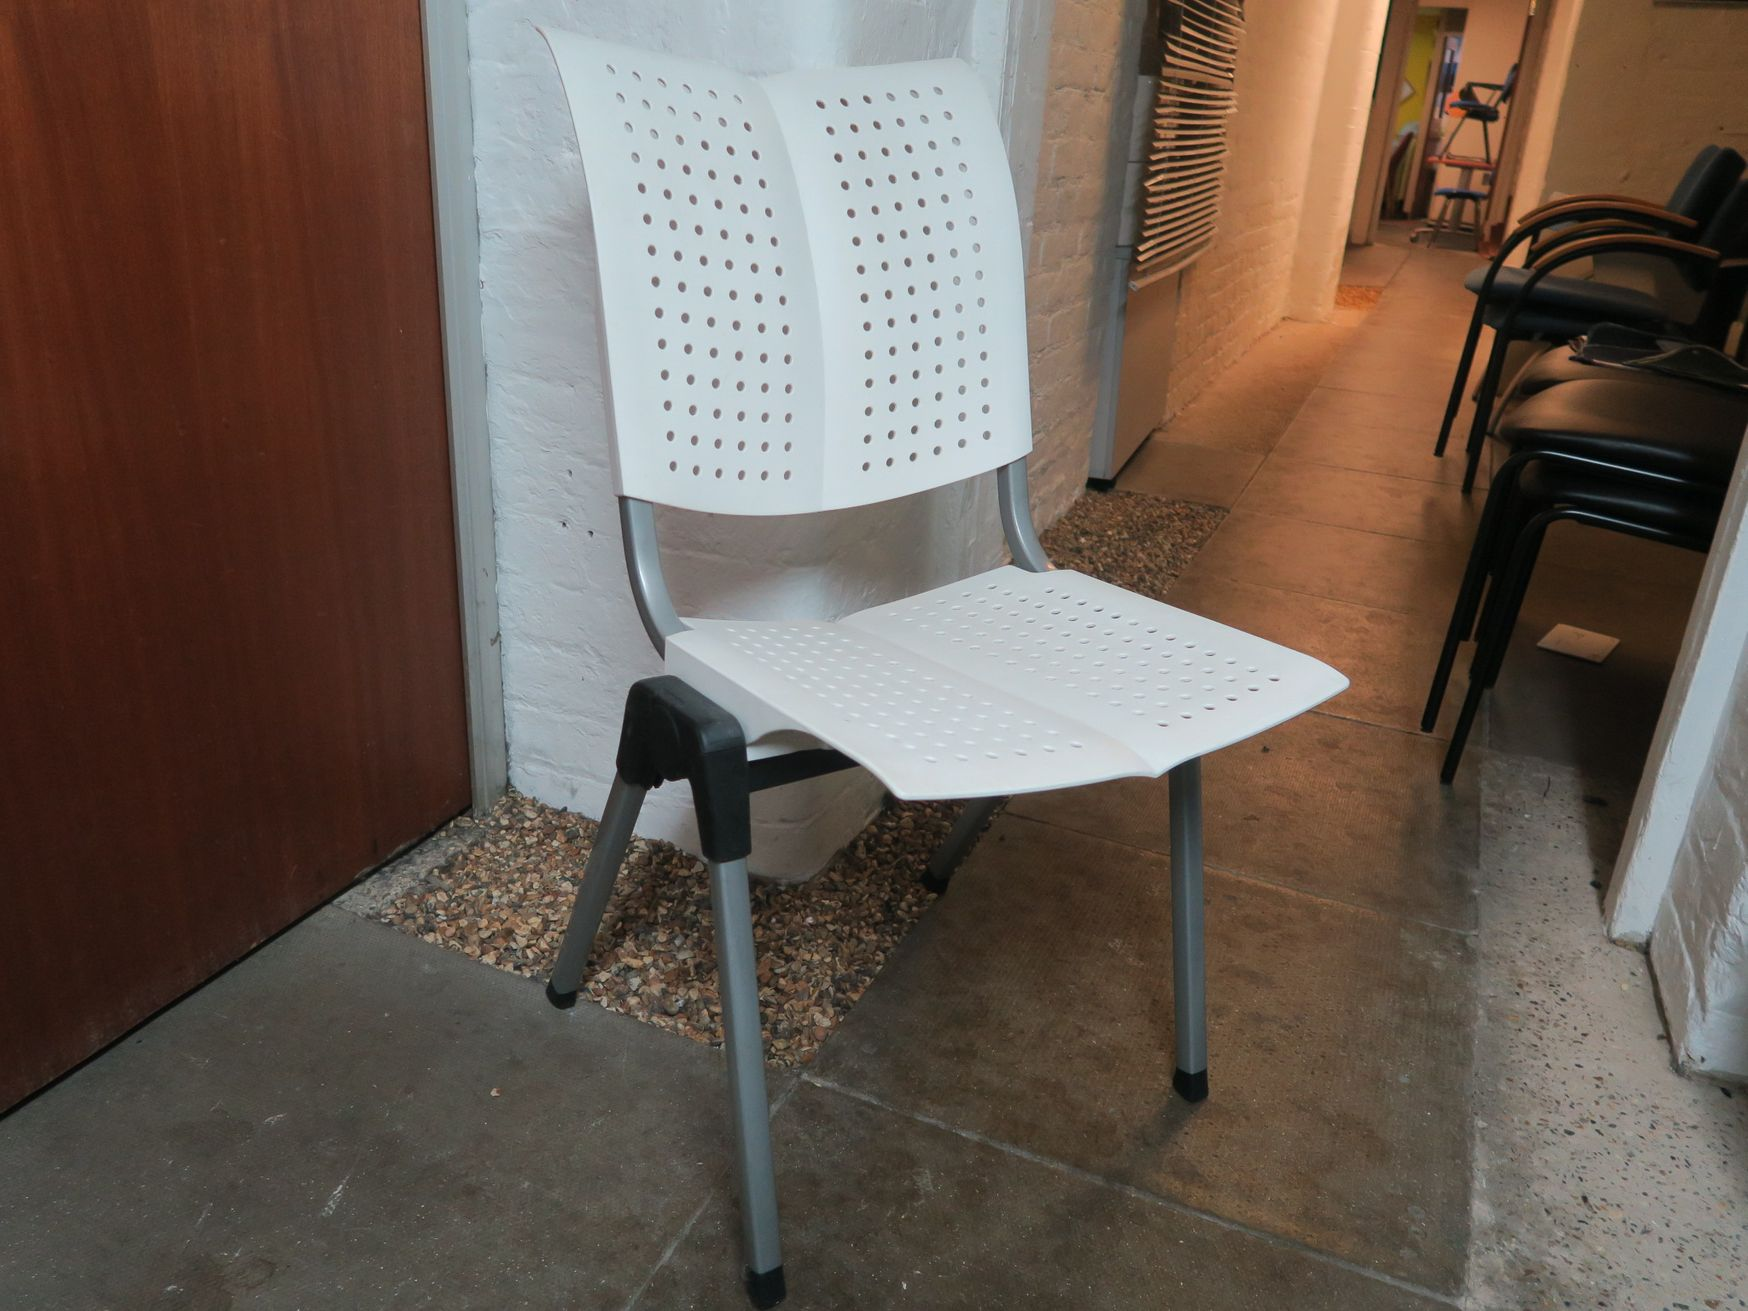 Modern white chair - white seat and back with silver frame